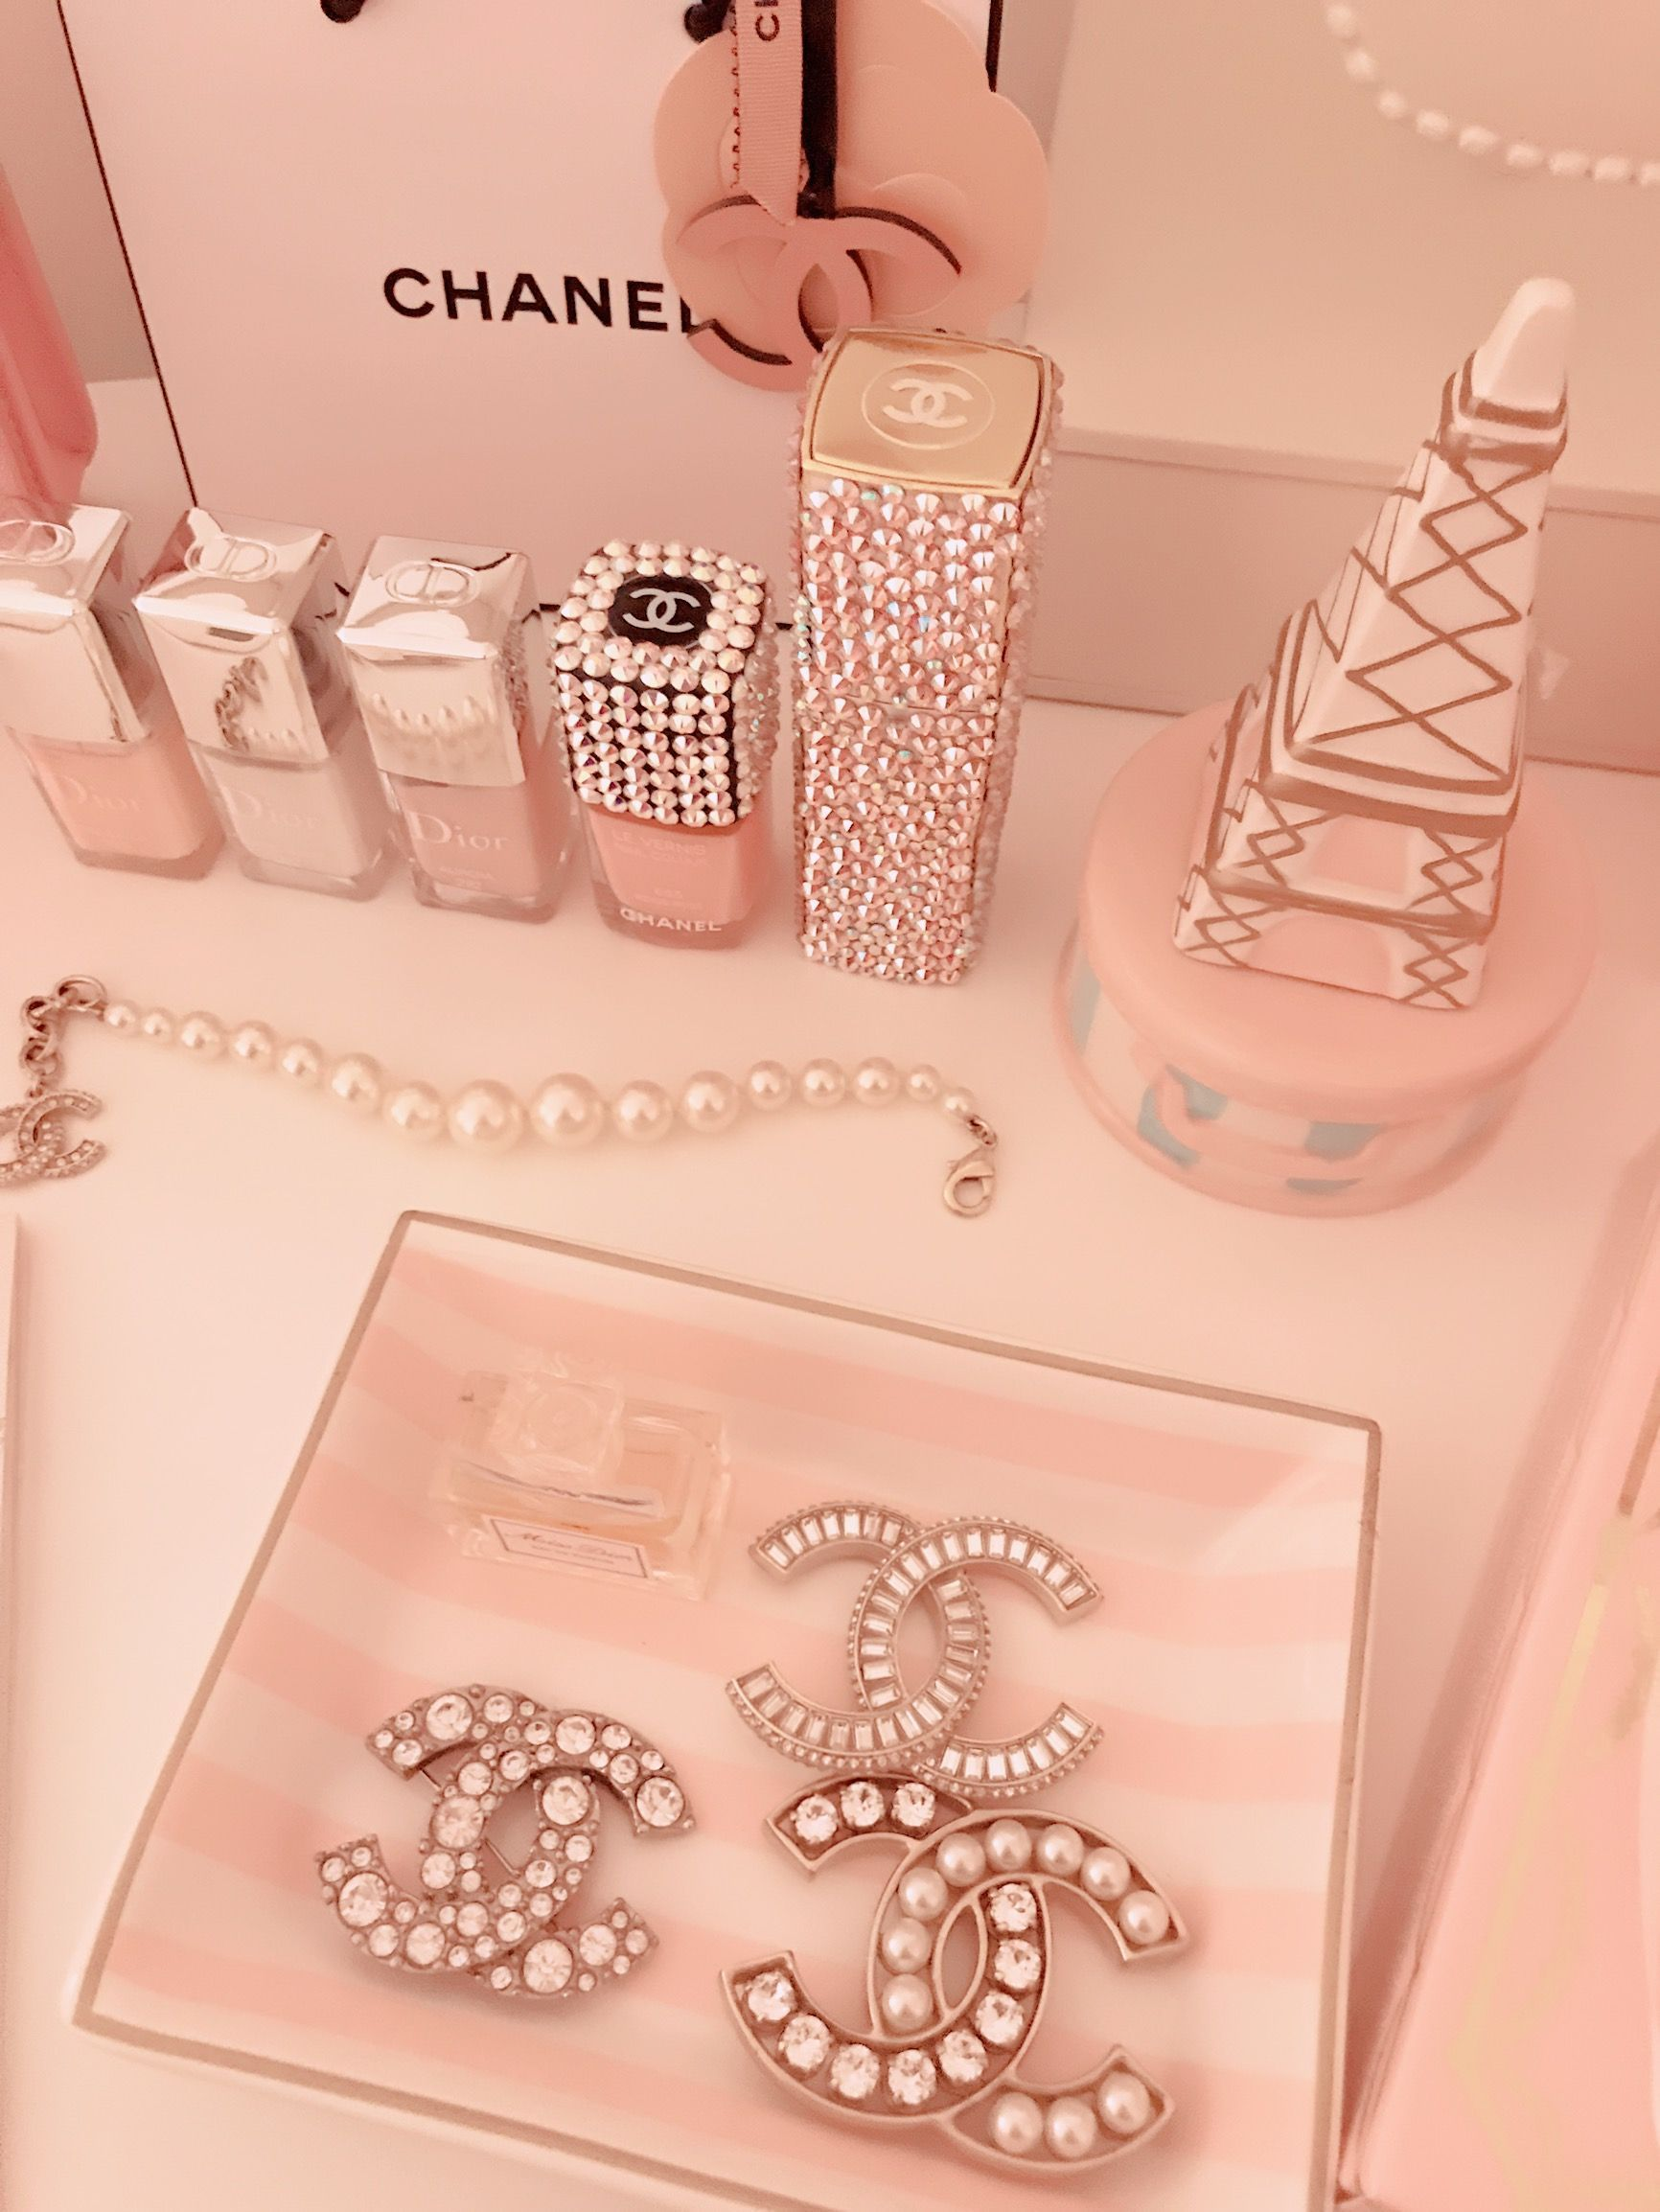 Chanel Aesthetic Wallpapers - Top Free ...